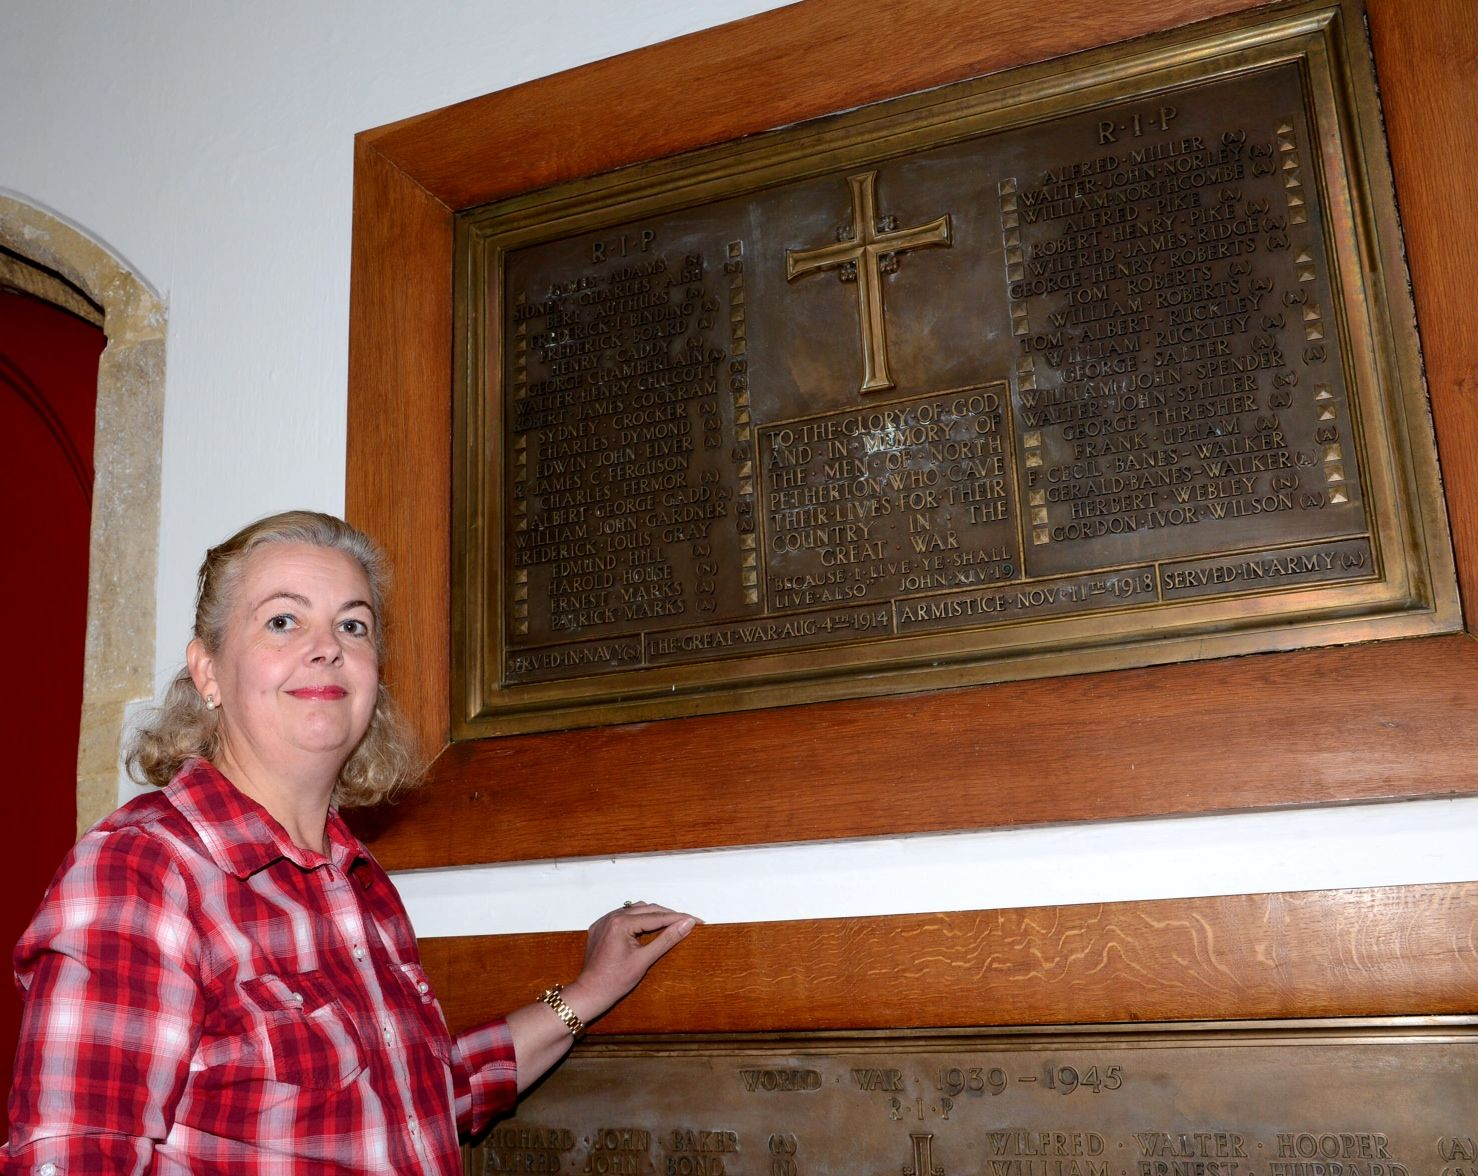 Wendy Mclean stands beside the war memorial plaque at North Petherton's Sty Mar